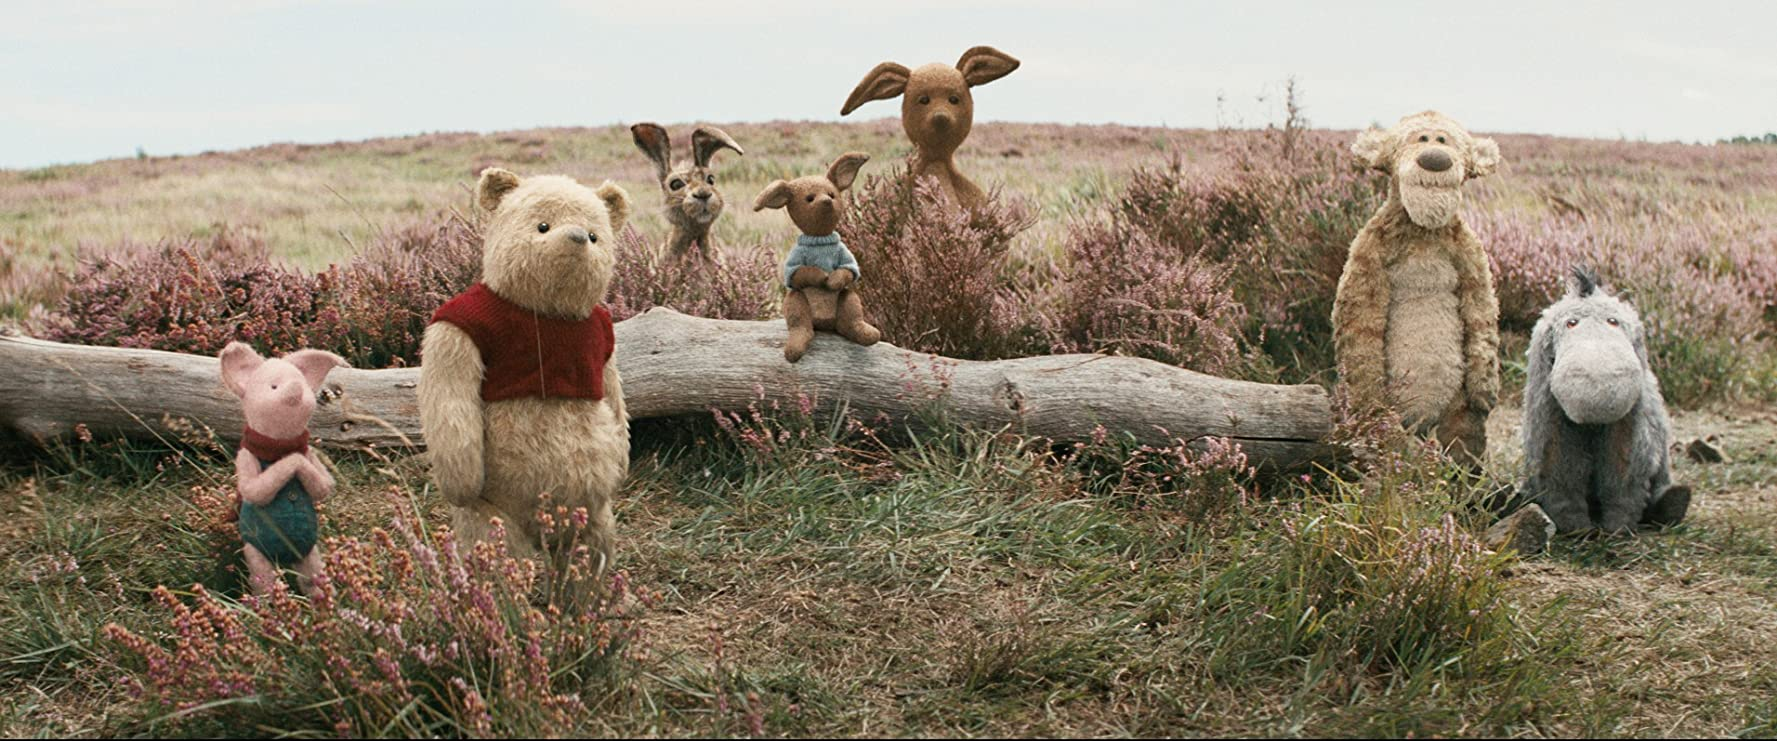 Christopher Robin Image 1